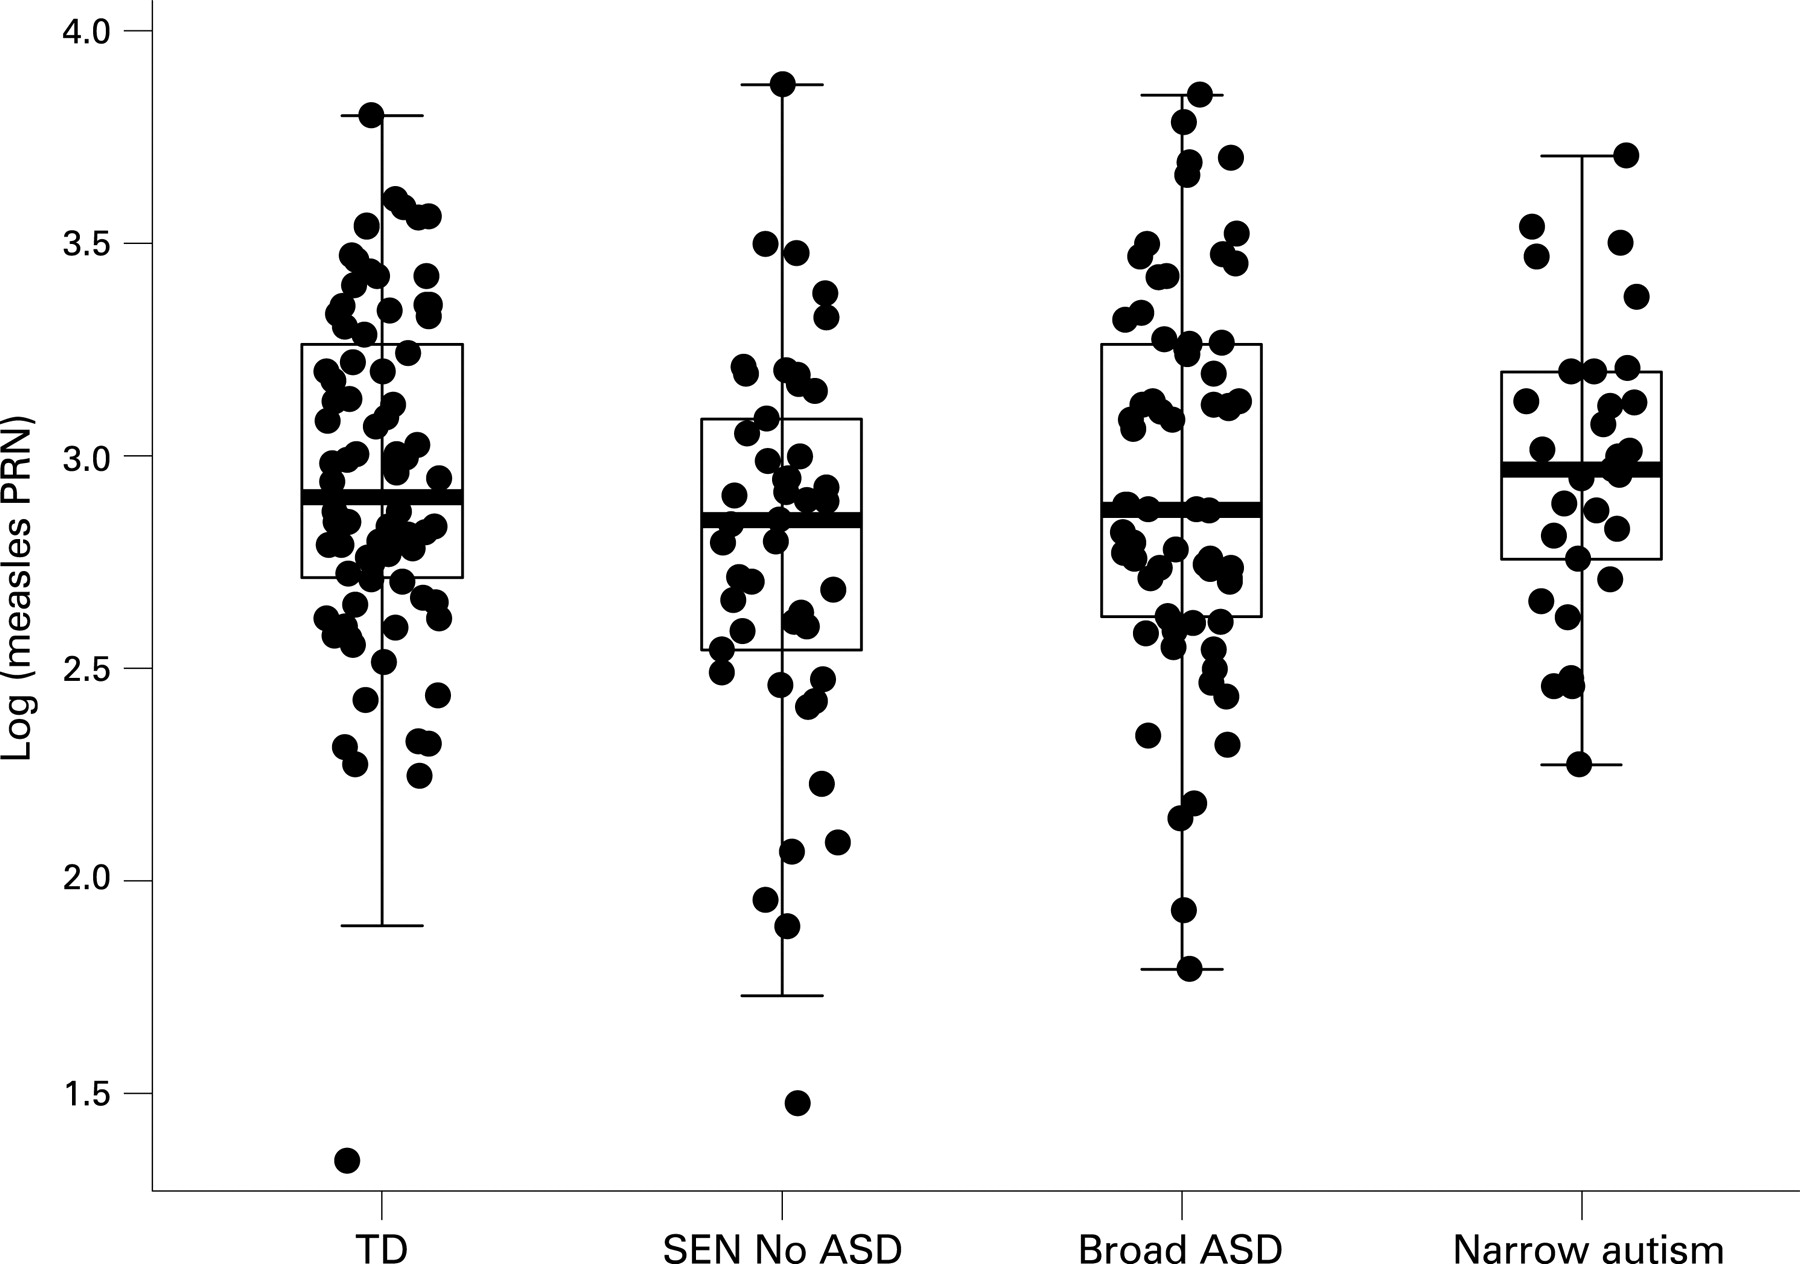 Measles vaccination and antibody response in autism